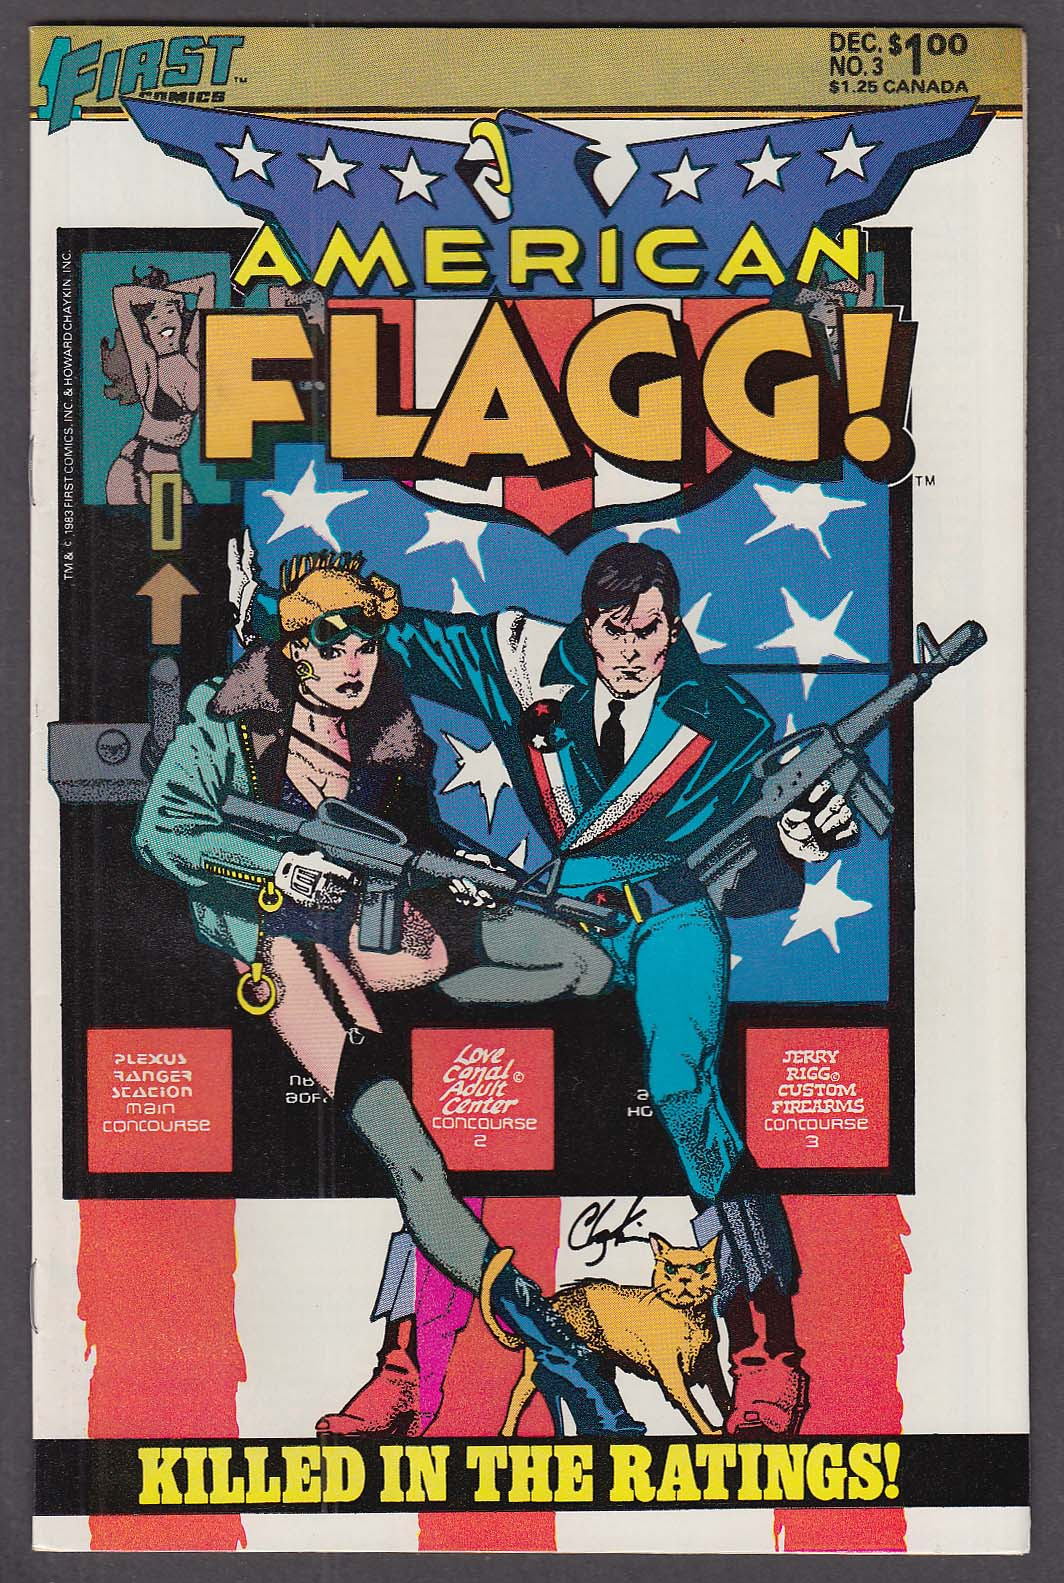 AMERICAN FLAGG! #3 First comic book 12 1983